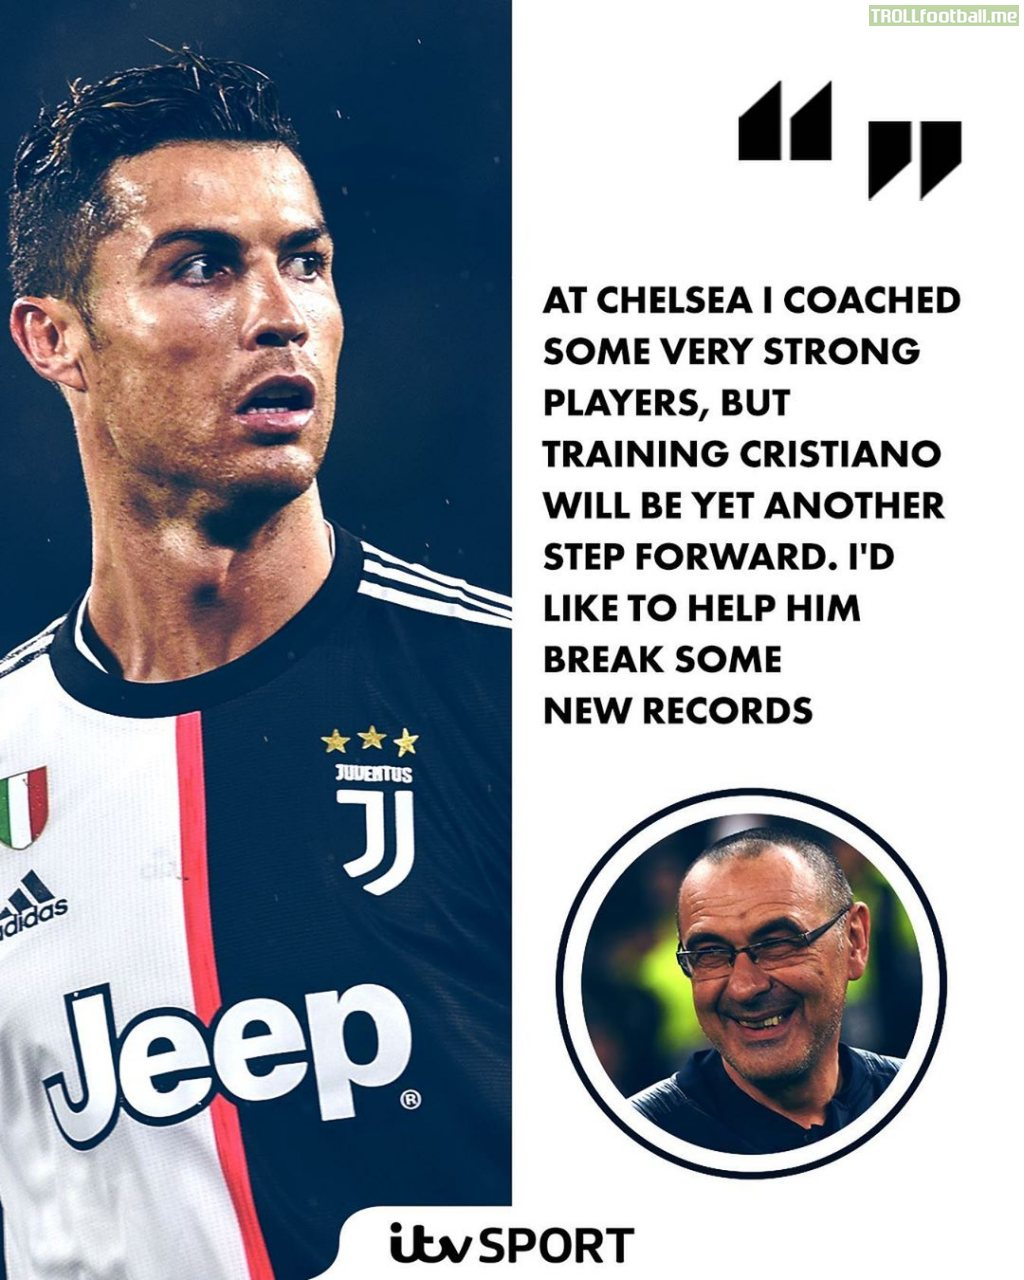 Maurizio Sarri: At Chelsea I coached some very strong players, but training Cristiano will be yet another step forward. I'd like to help him break some new records.